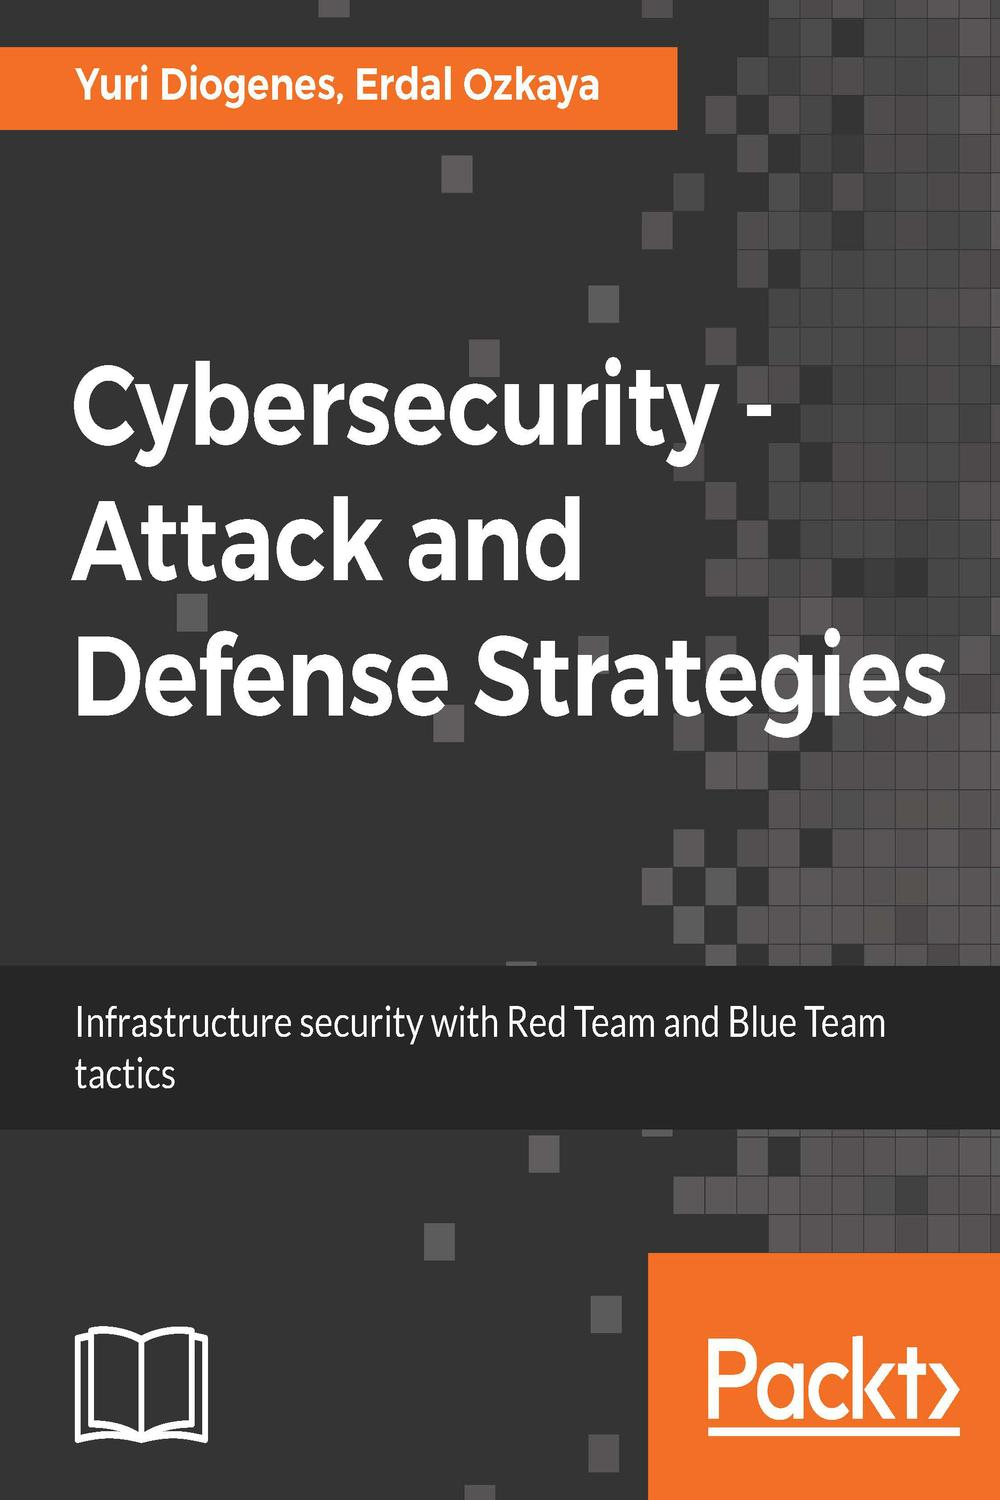 Cybersecurity Attack And Defense Strategies By Yuri Diogenes Erdal